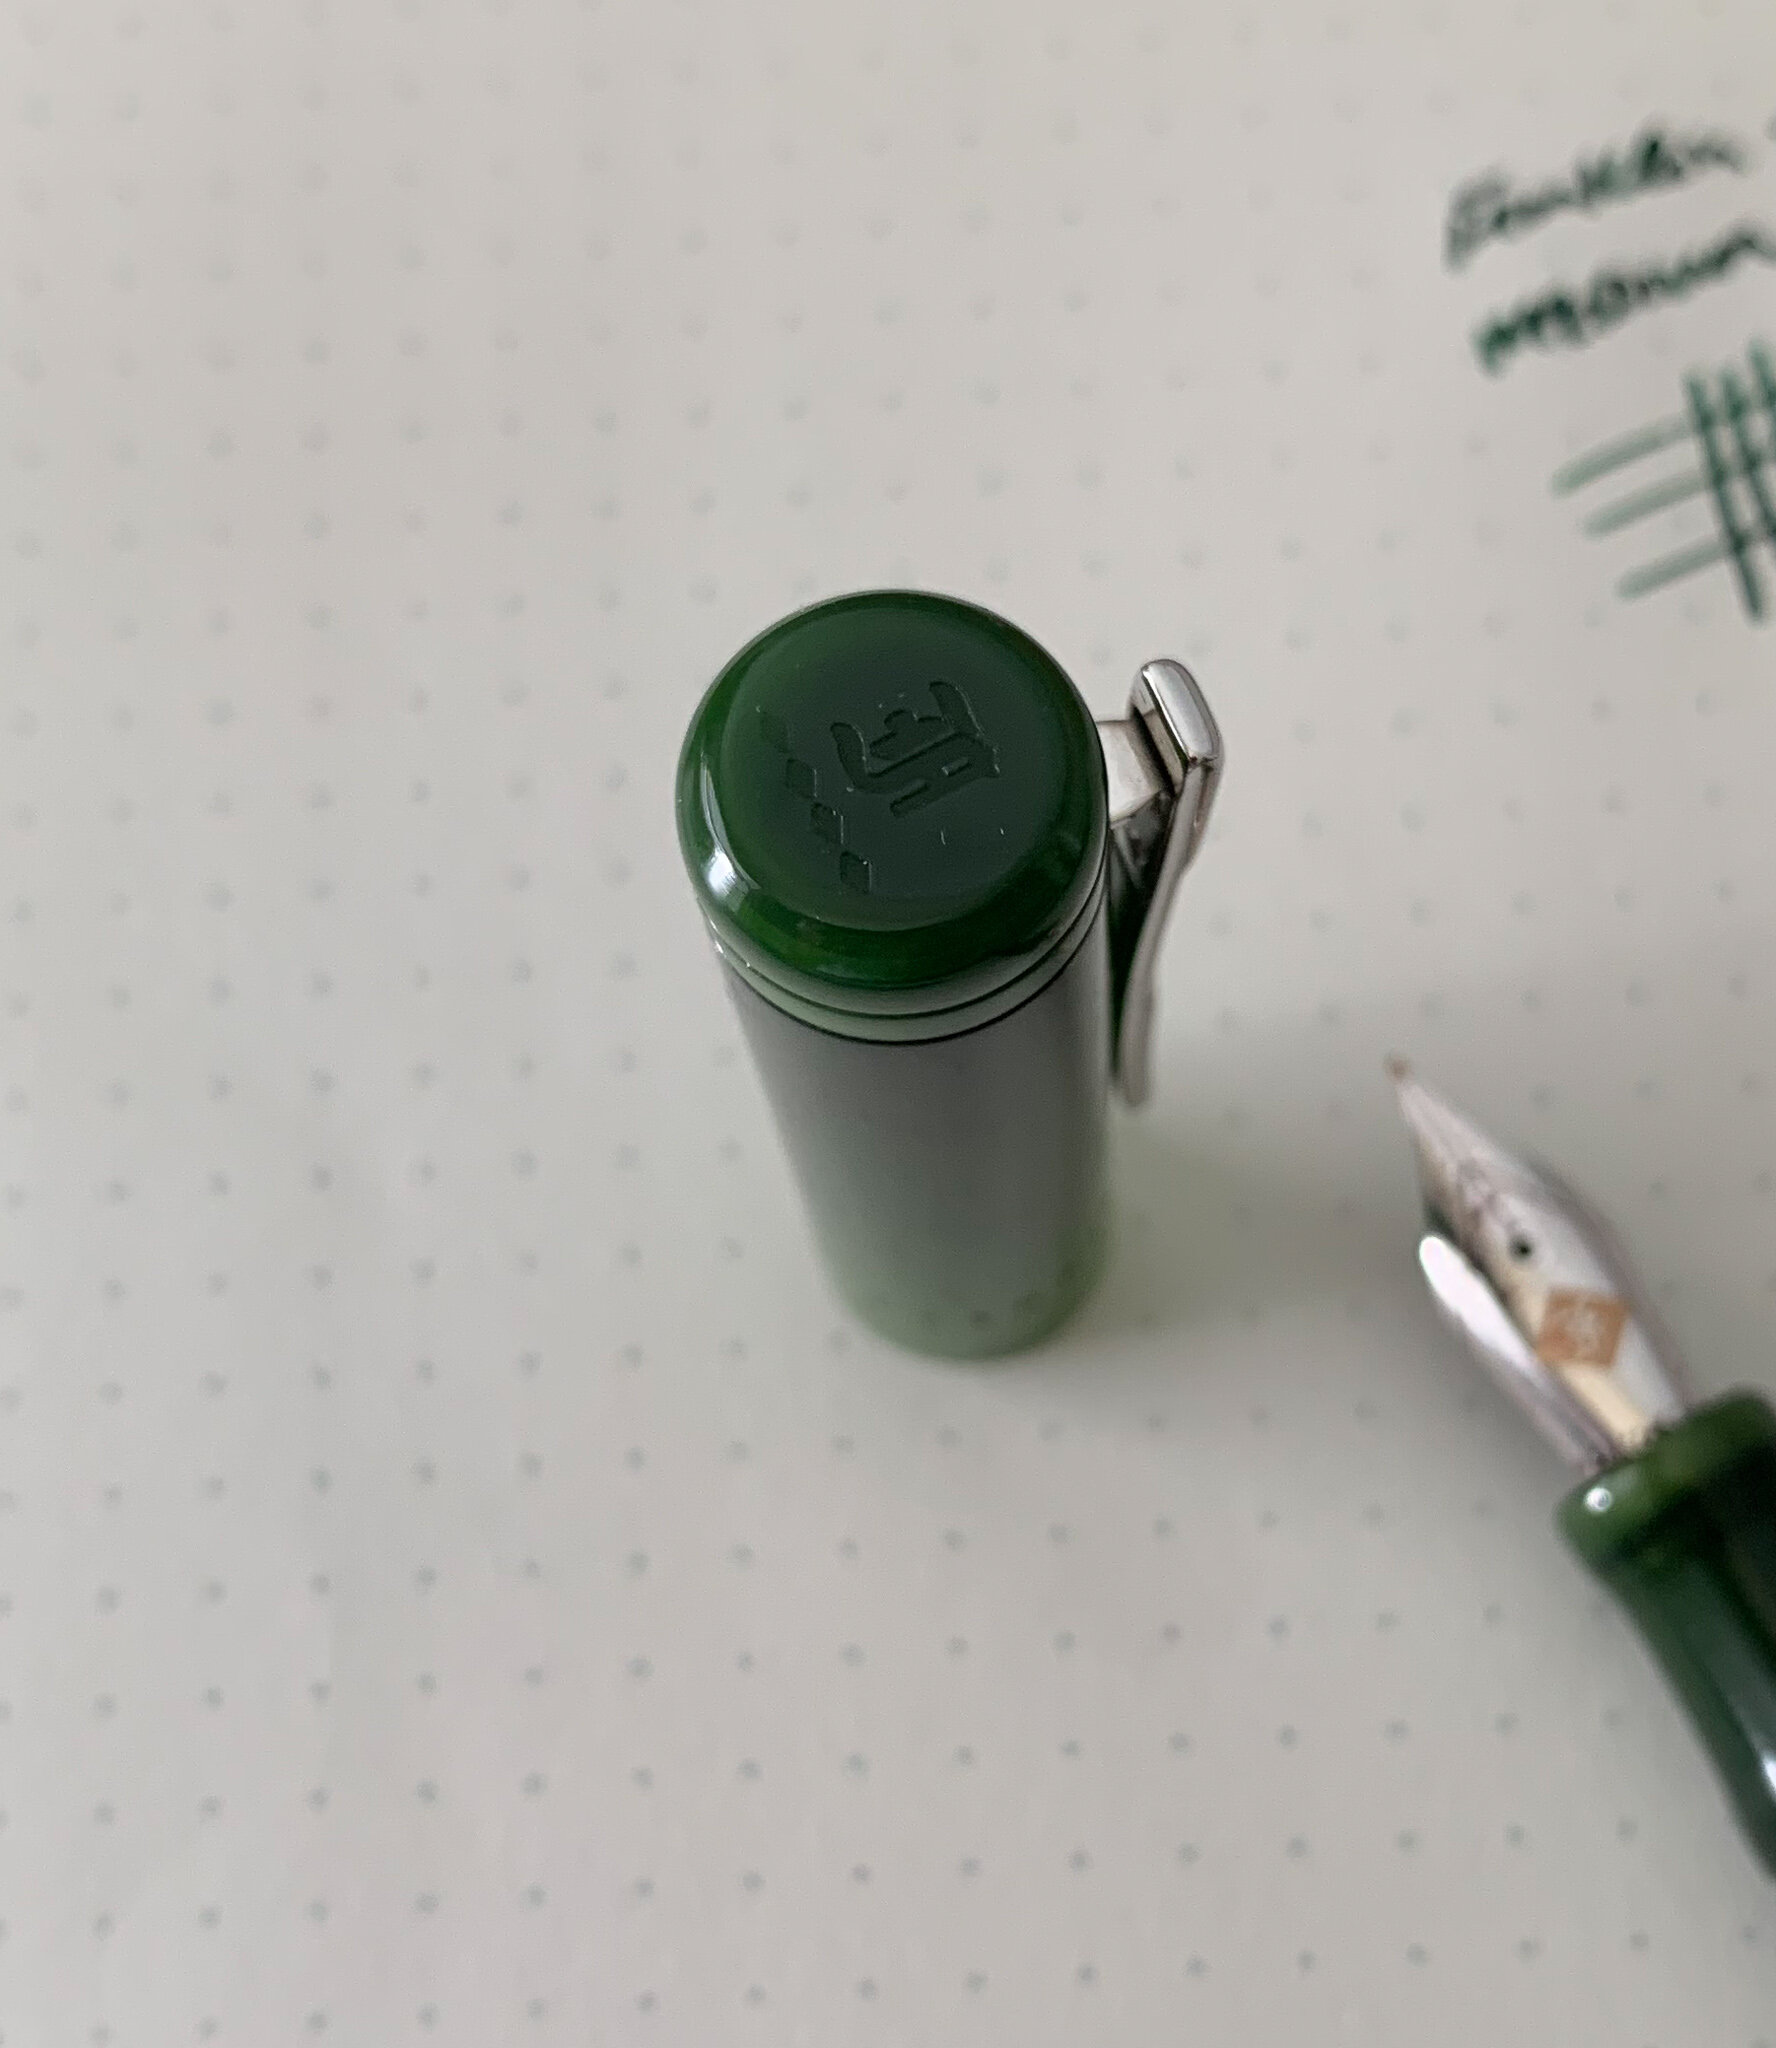 The top of each cap is engraved with the understated Franklin-Christoph logo.